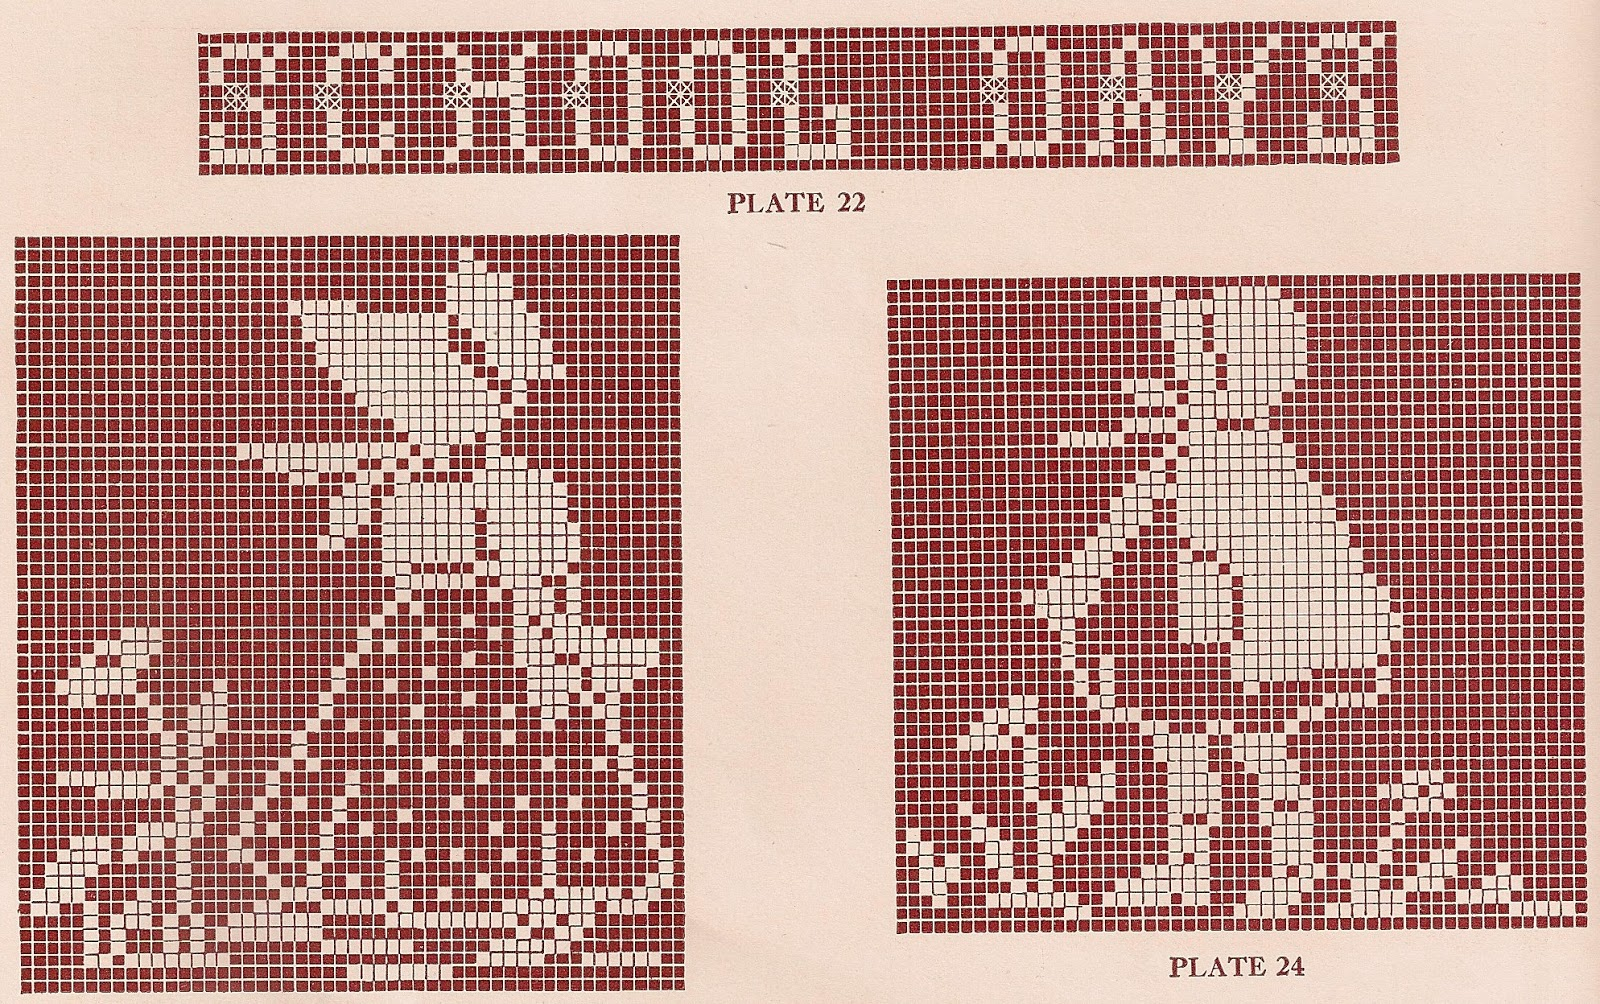 Sentimental baby free cross stitch or filet crochet patterns for baby or if crochet is your passion these charts would be easy to read and could be adapted to any number of projects dt1010fo